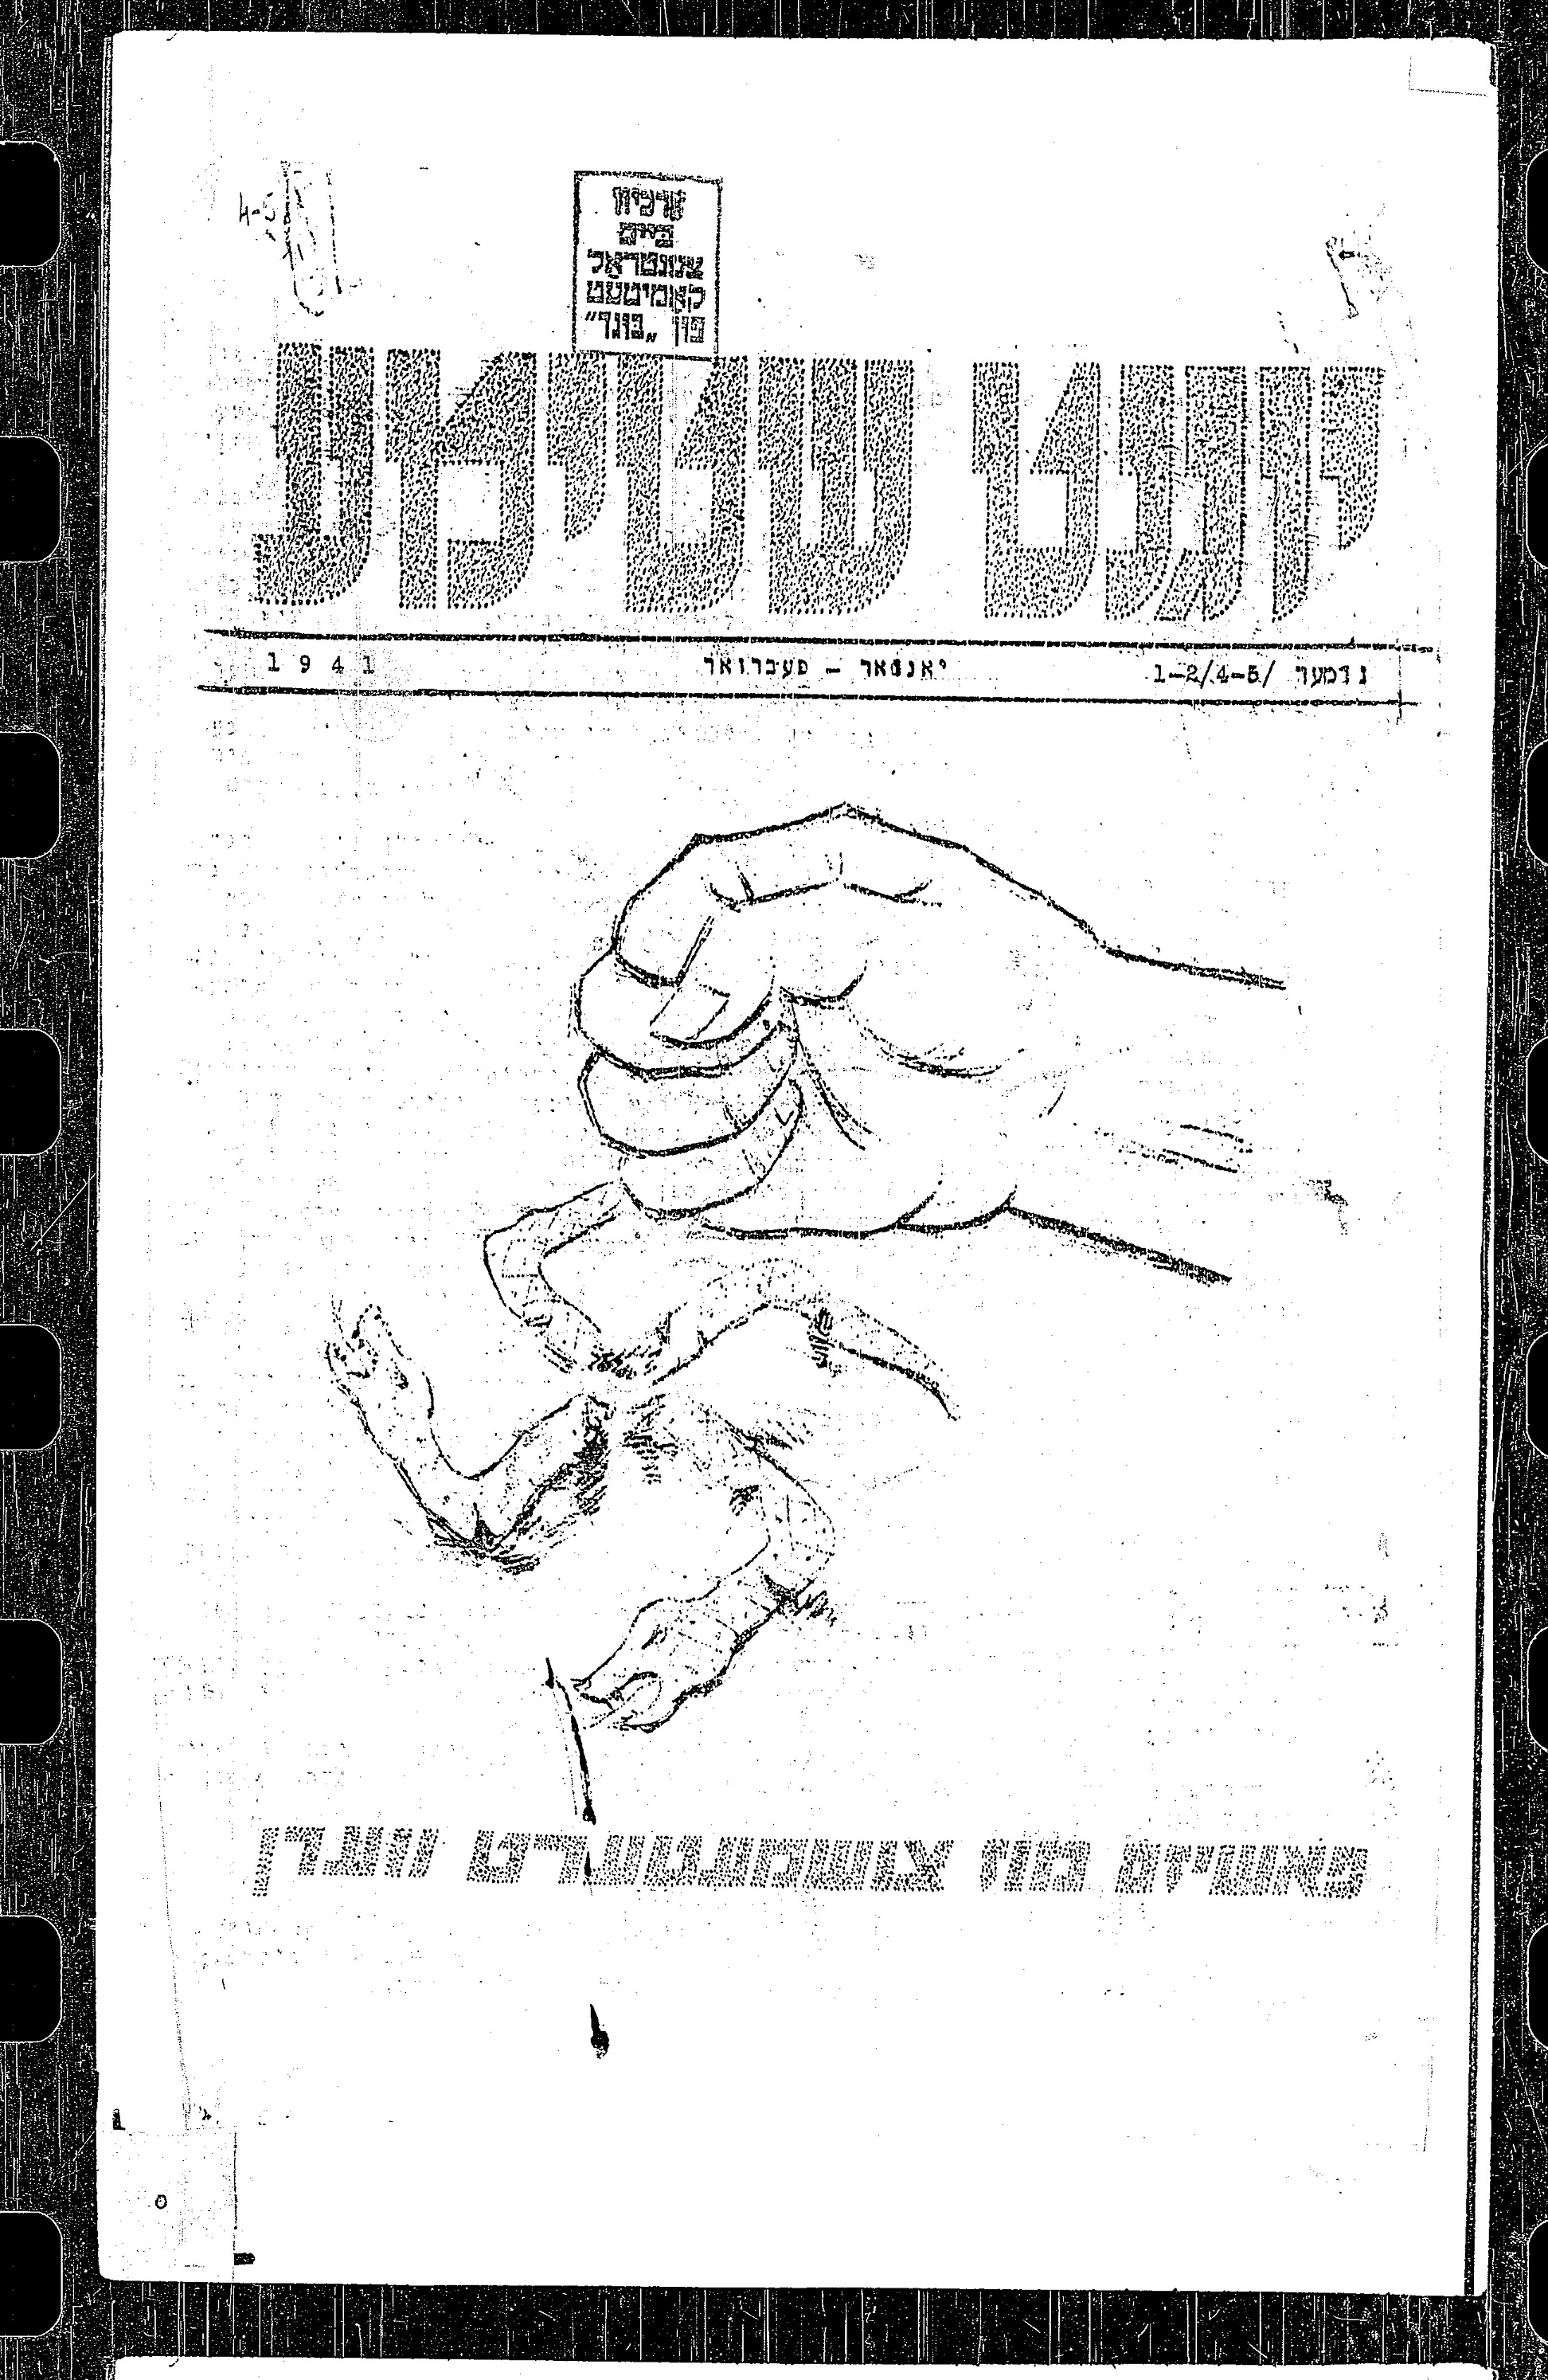 Yugnt-Shtime (Voice of the Youth), publication of the Bund Youth Movement, Yiddish, Issue 1-2, January-February 1941